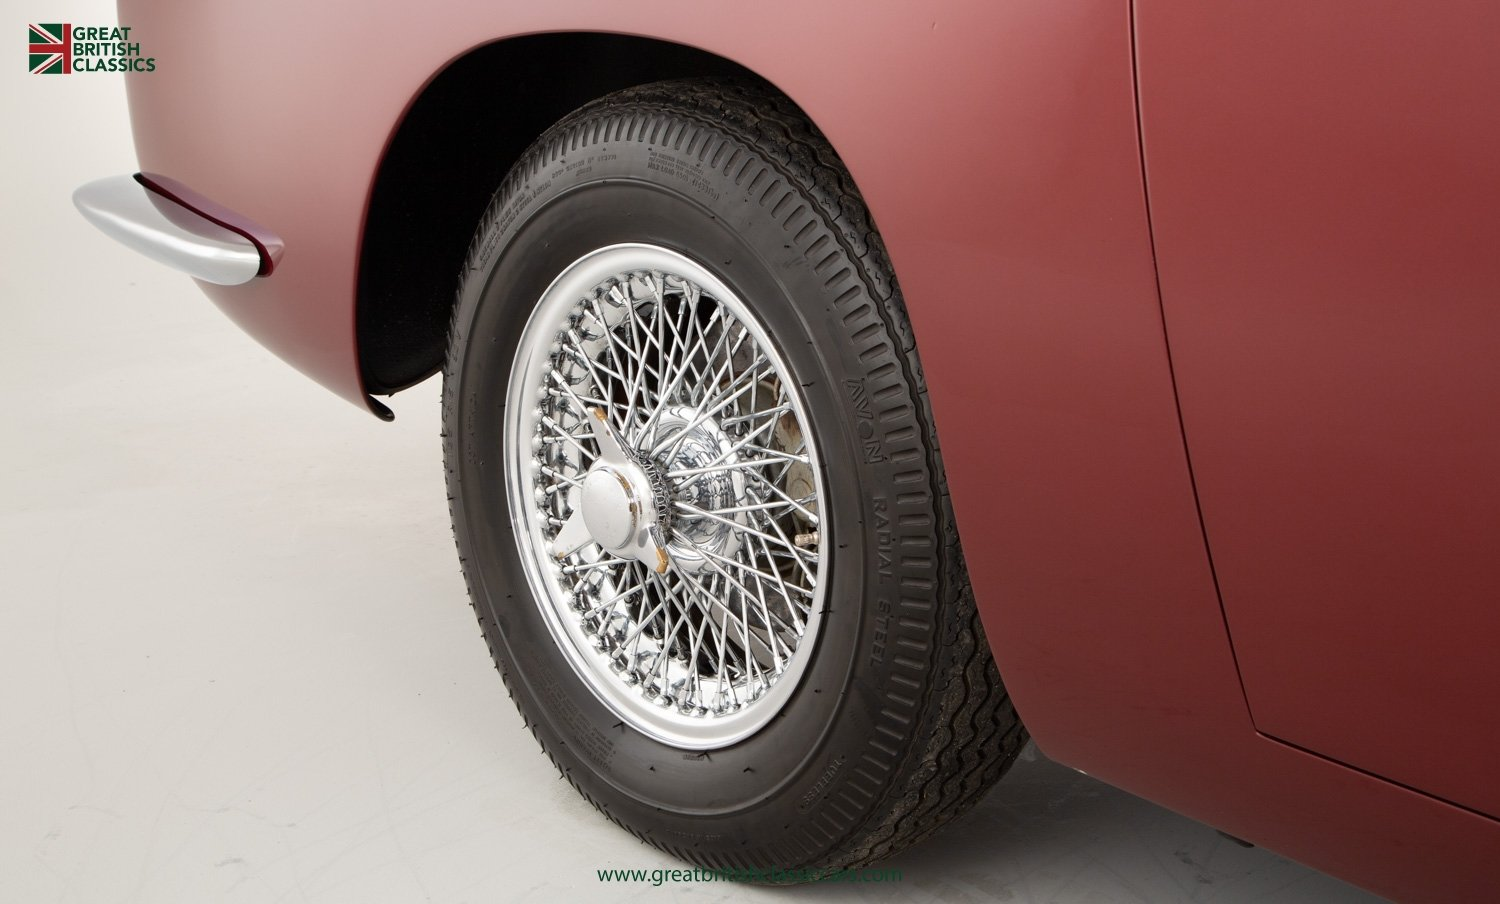 1966 ASTON MARTIN DB6 // FULLY RESTORED // INCREDIBLE HISTORY For Sale (picture 29 of 29)